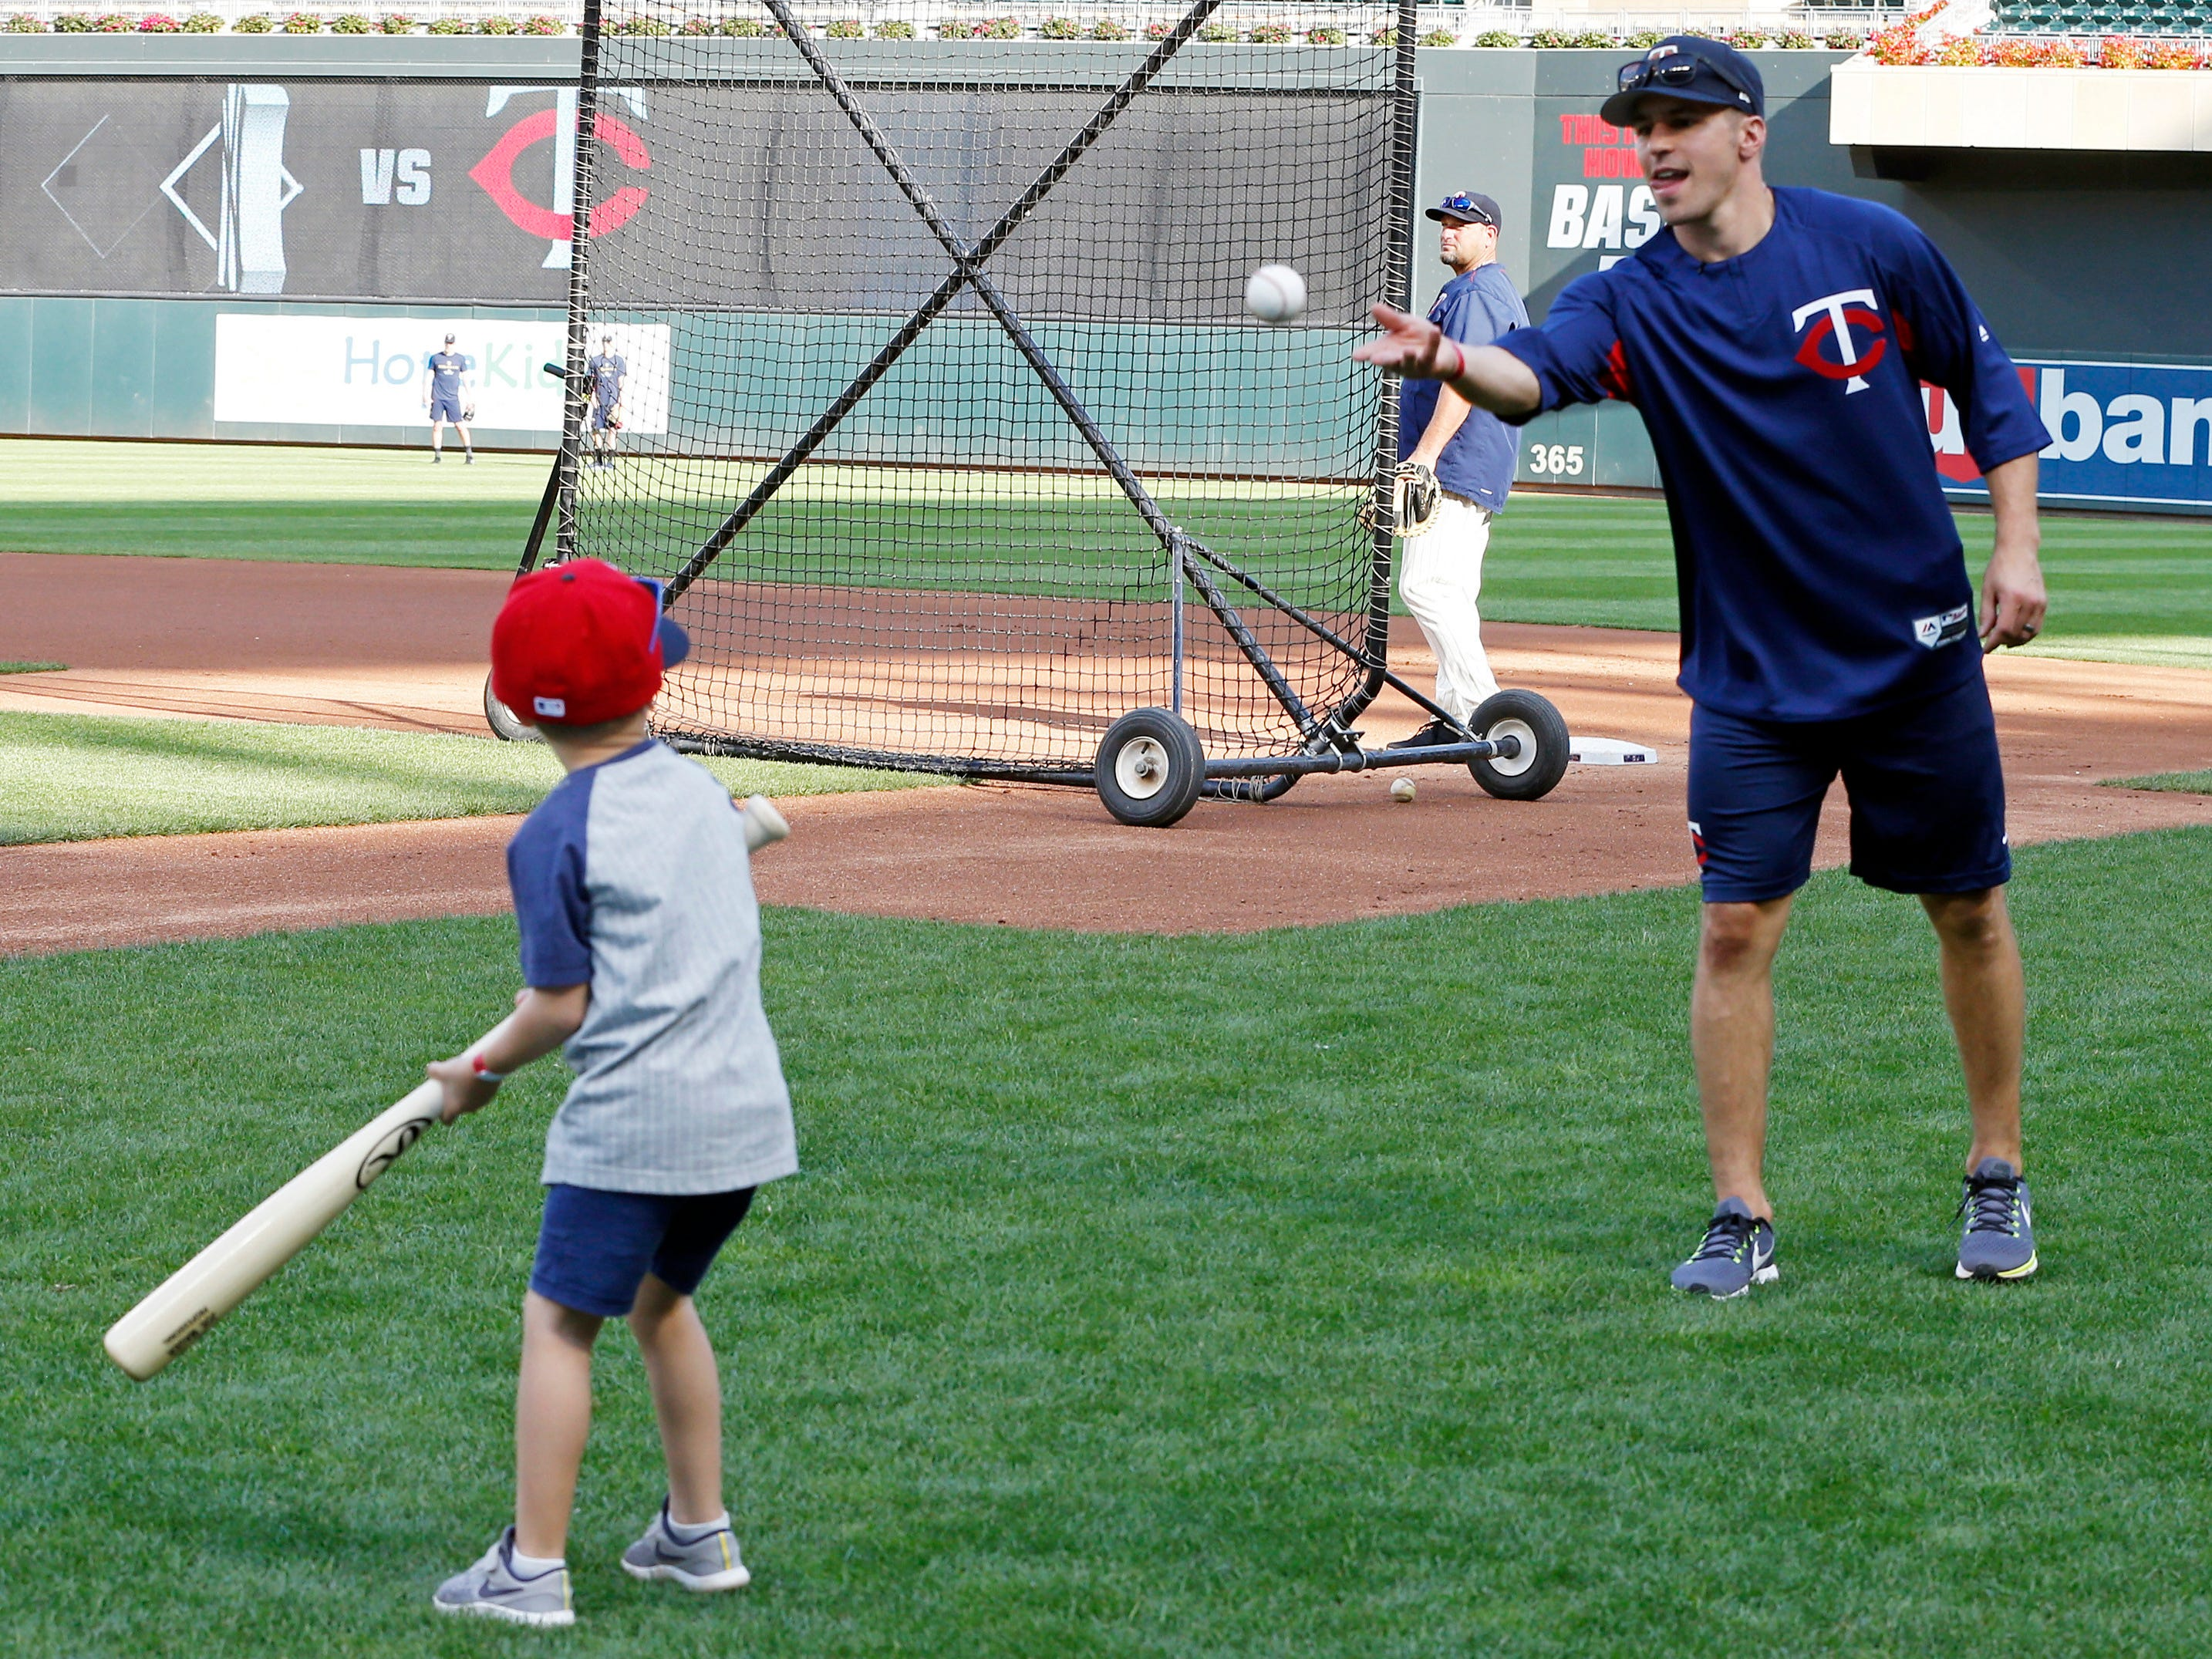 Minnesota Wild's Zach Parise, a former captain with the New Jersey Devils, throws to his son Jackson before the Minnesota Twins batting practice and a baseball game against the New York Yankees as several players of the NHL hockey team visited Target Field Wednesday, Sept. 12, 2018, in Minneapolis. The Wild open training camp Thursday in St Paul, Minn.